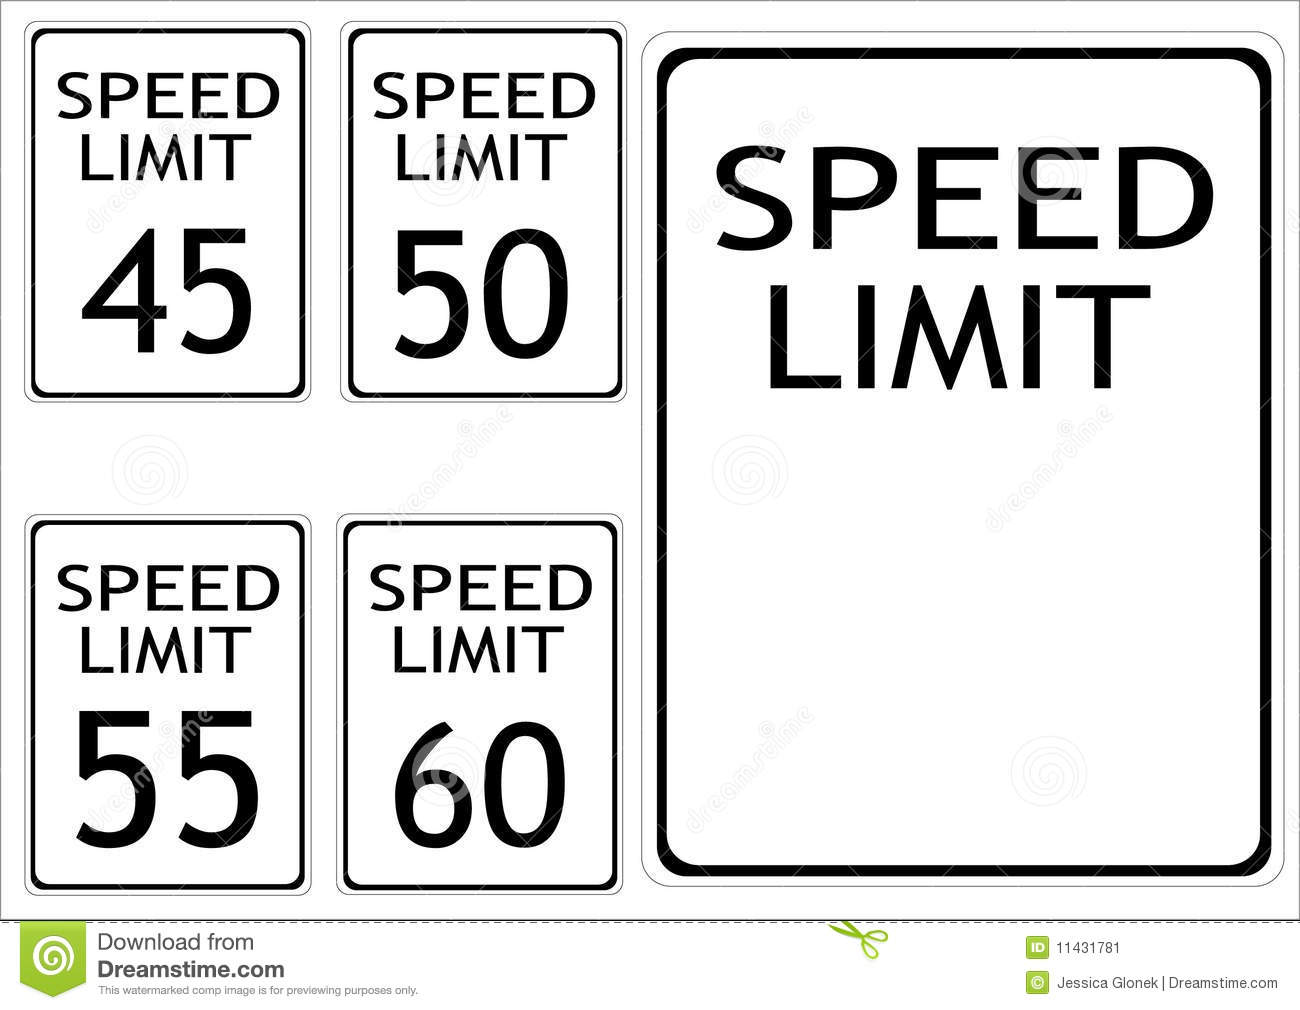 Speed limit road signs stock vector. Illustration of safe.